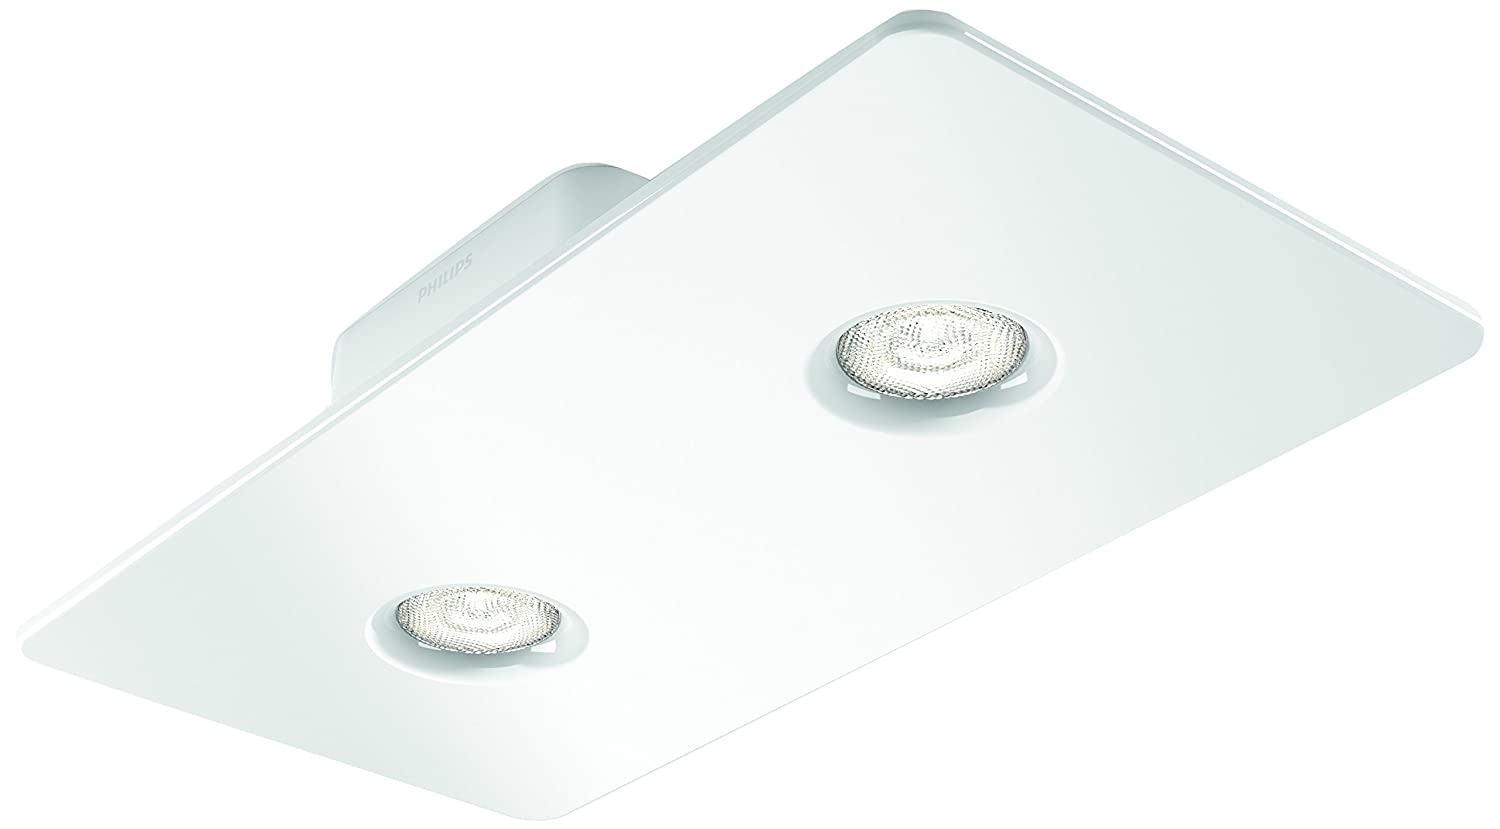 Philips InStyle LED-Spot Magna, 1000lm, weiß, Metall, 4.5 W, 2-flammig